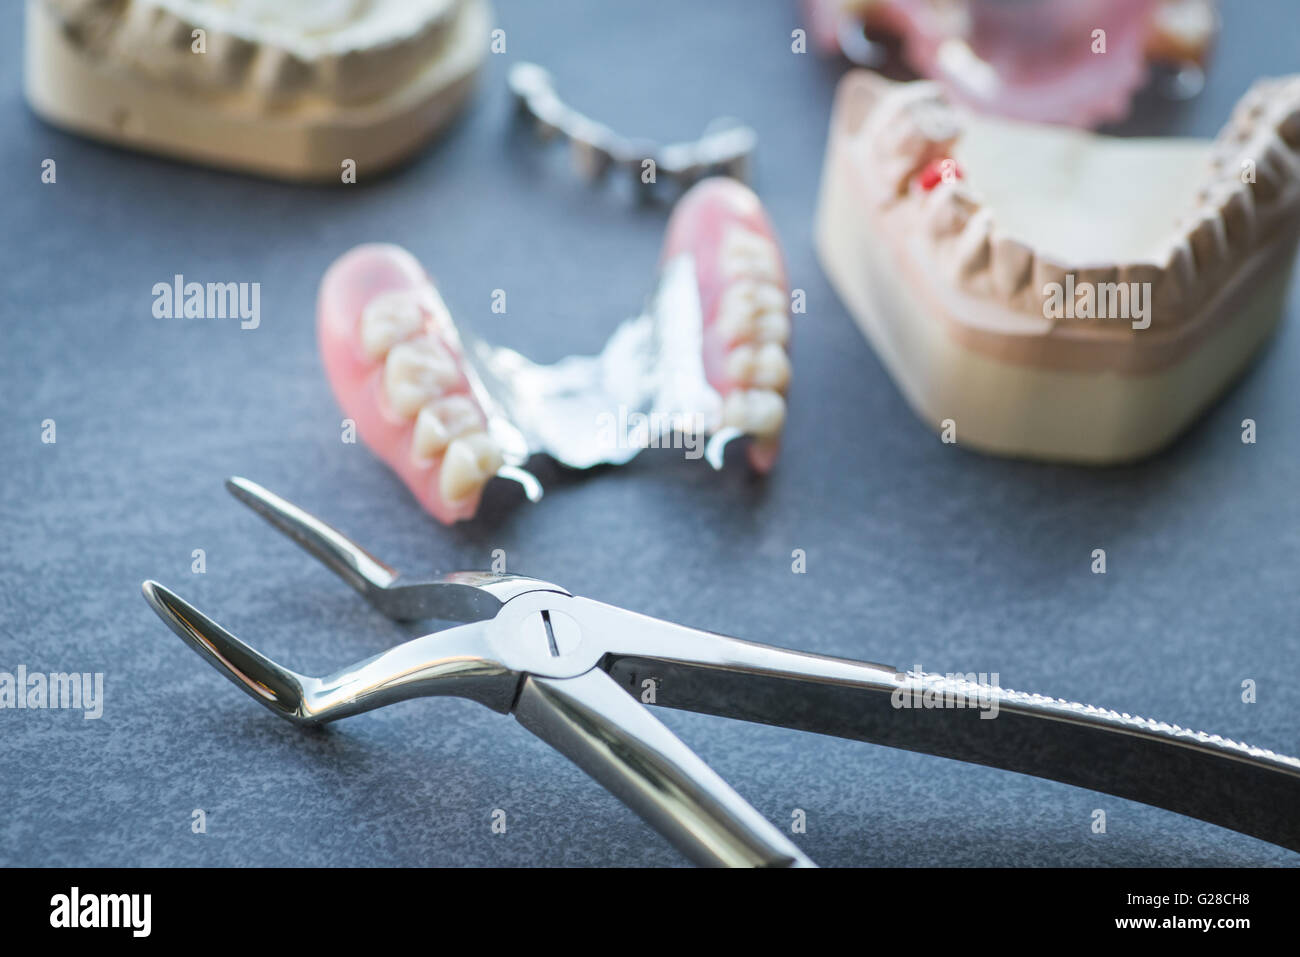 Artificial replacement teeth with forceps on a dark surface - Stock Image